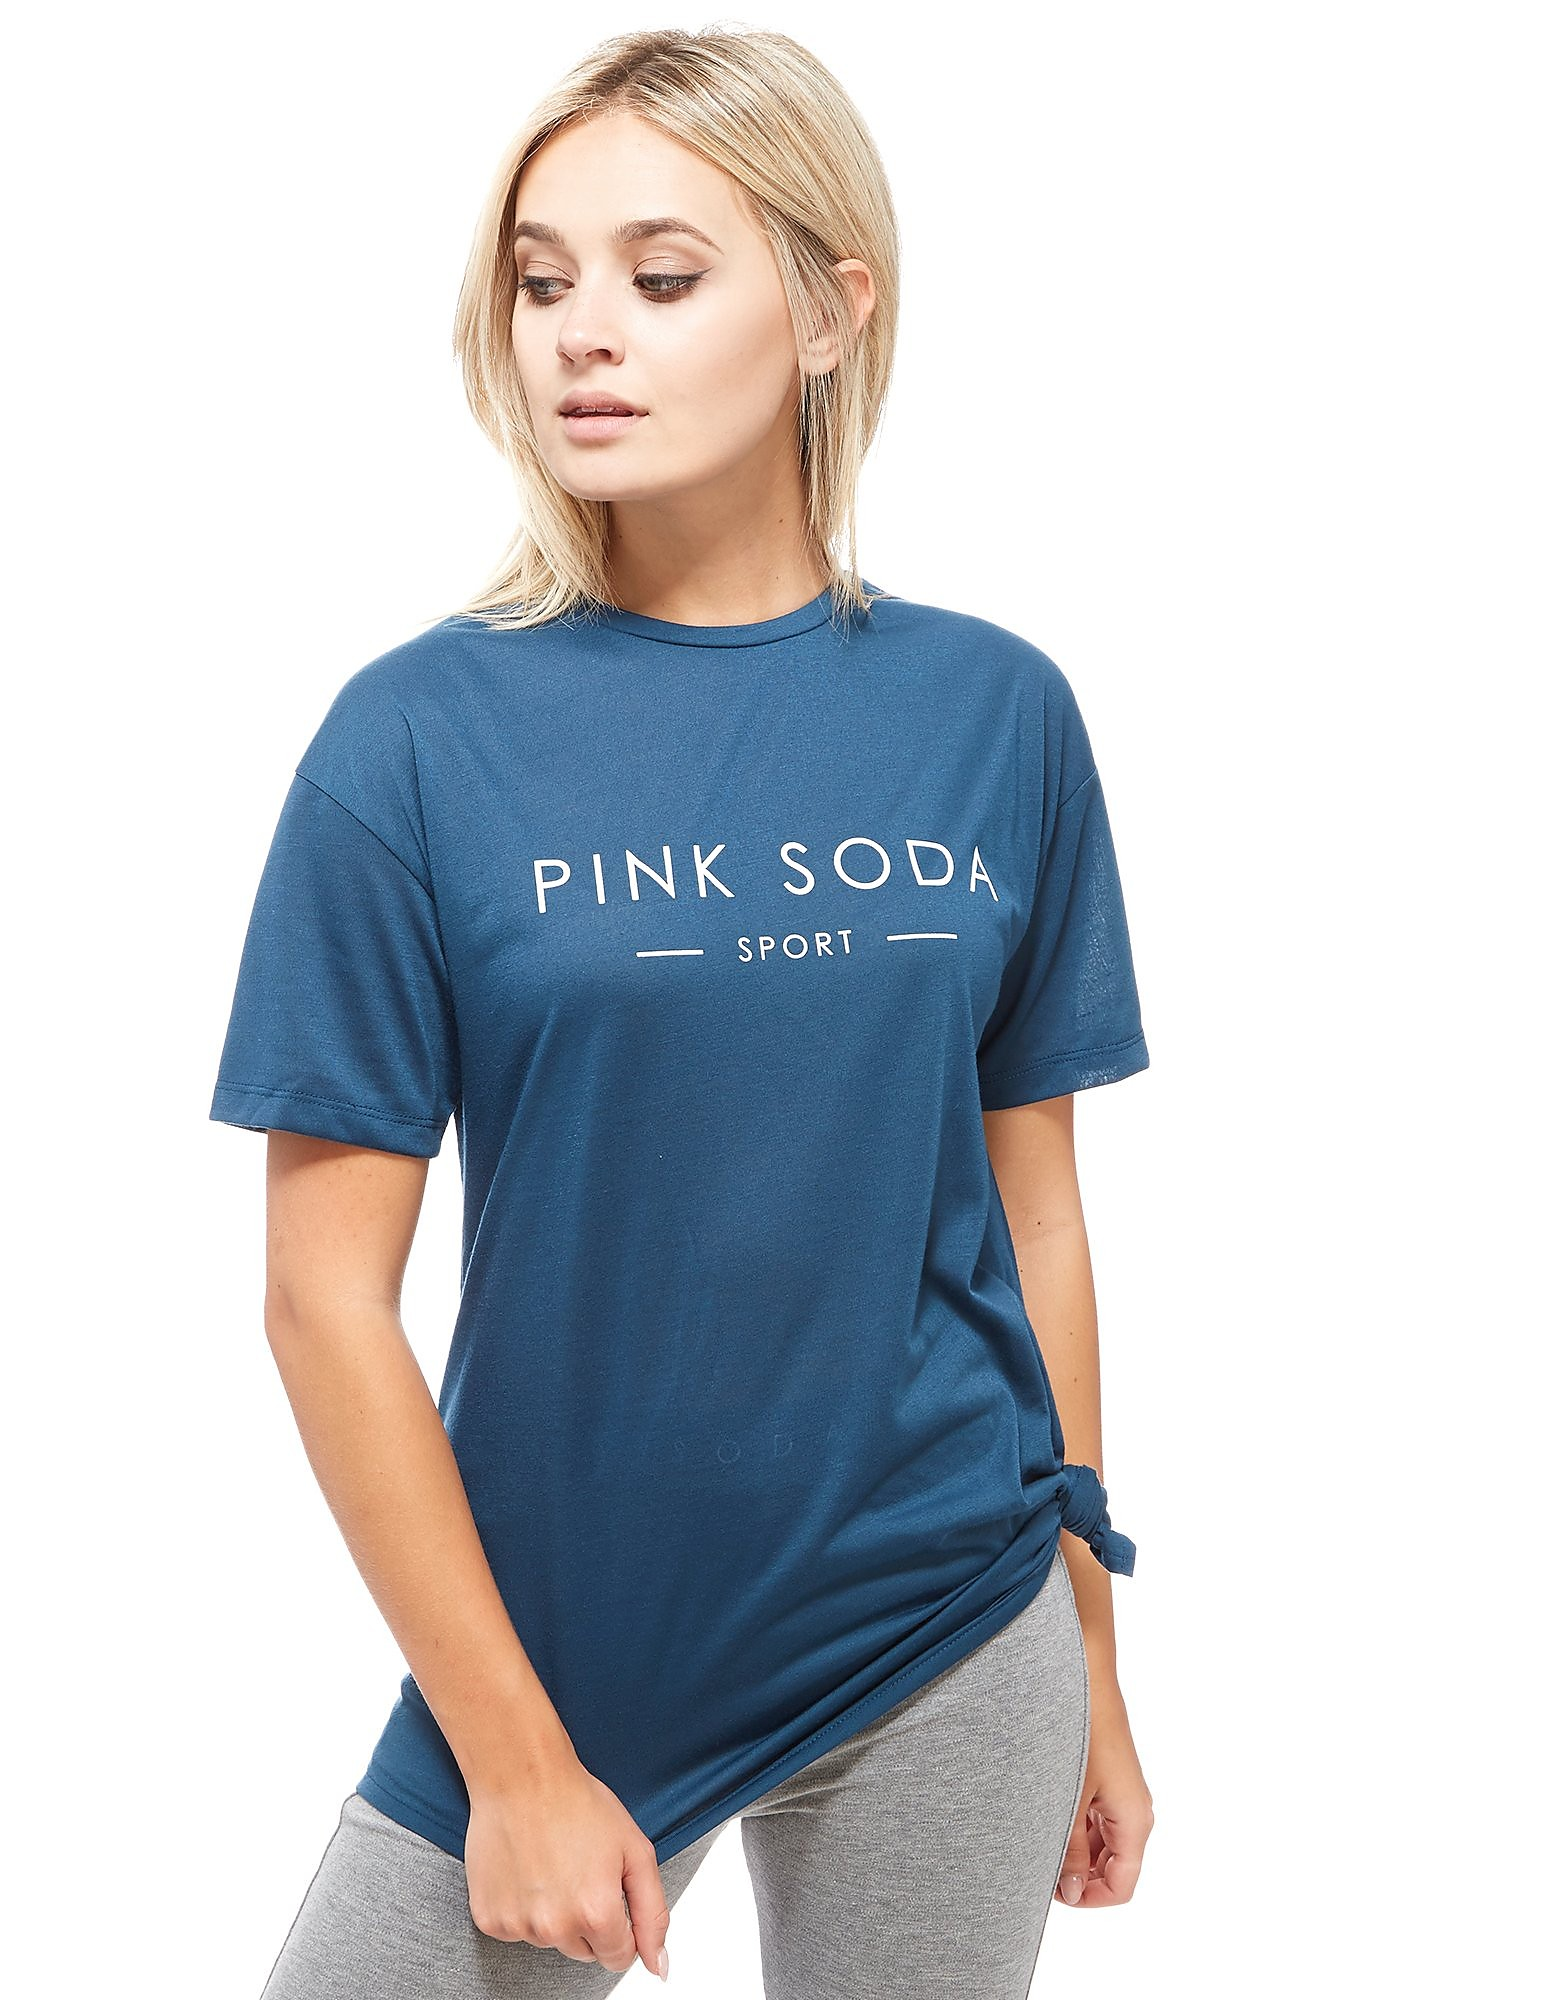 Pink Soda Sport Reps Knot T-Shirt